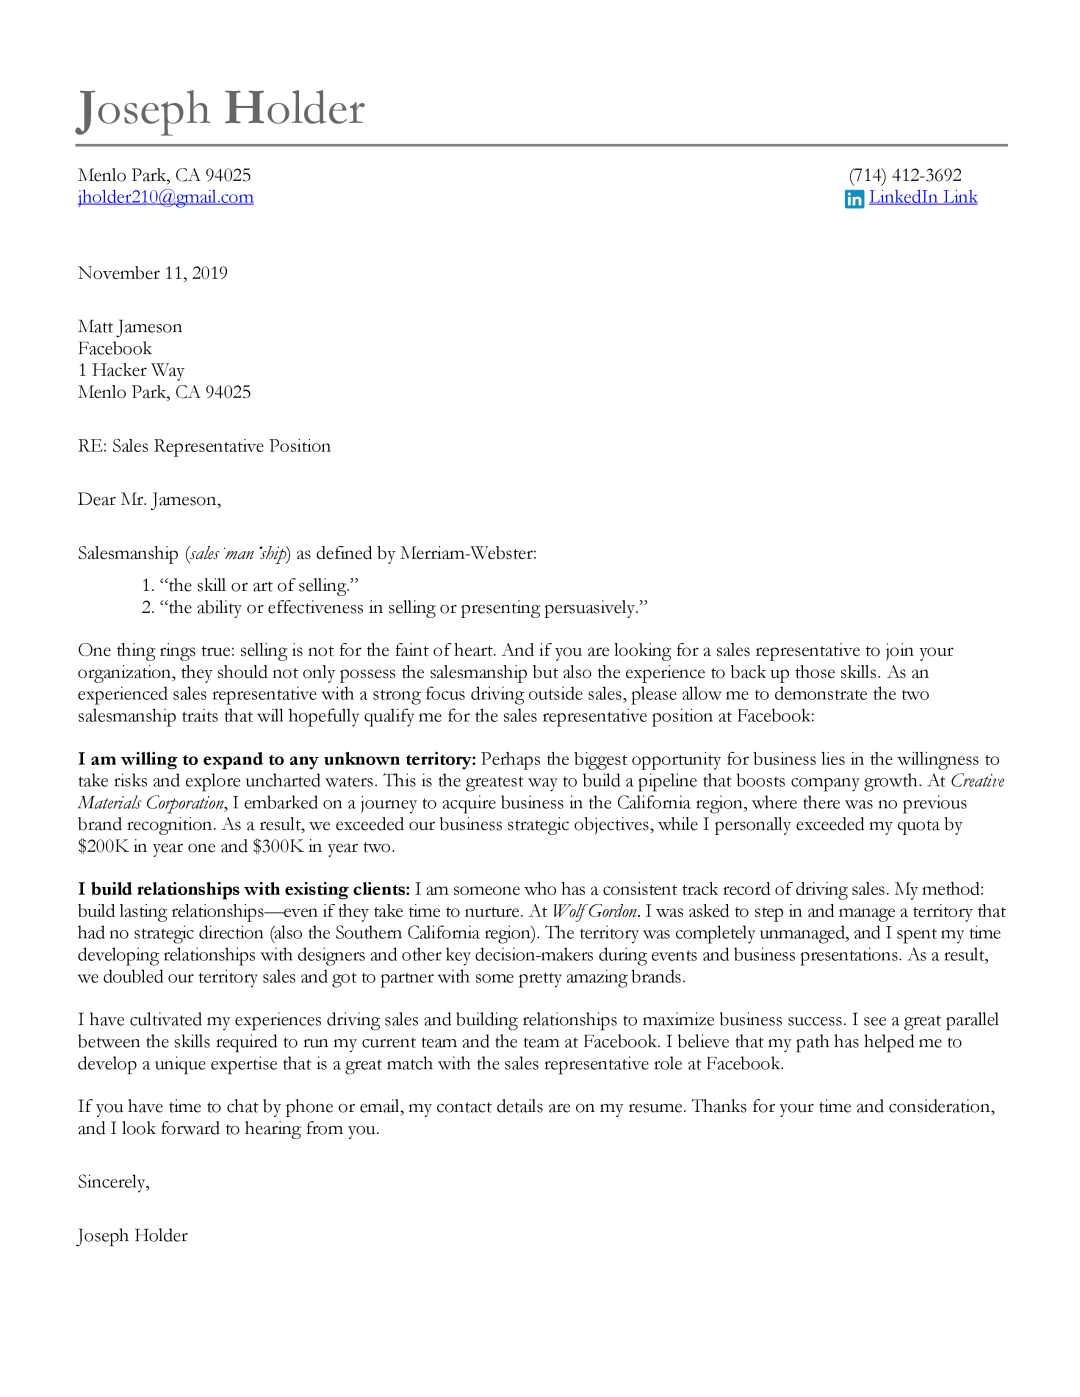 A Sales Cover Letter Sample, professionally written by Let's Eat, Grandma resume service.